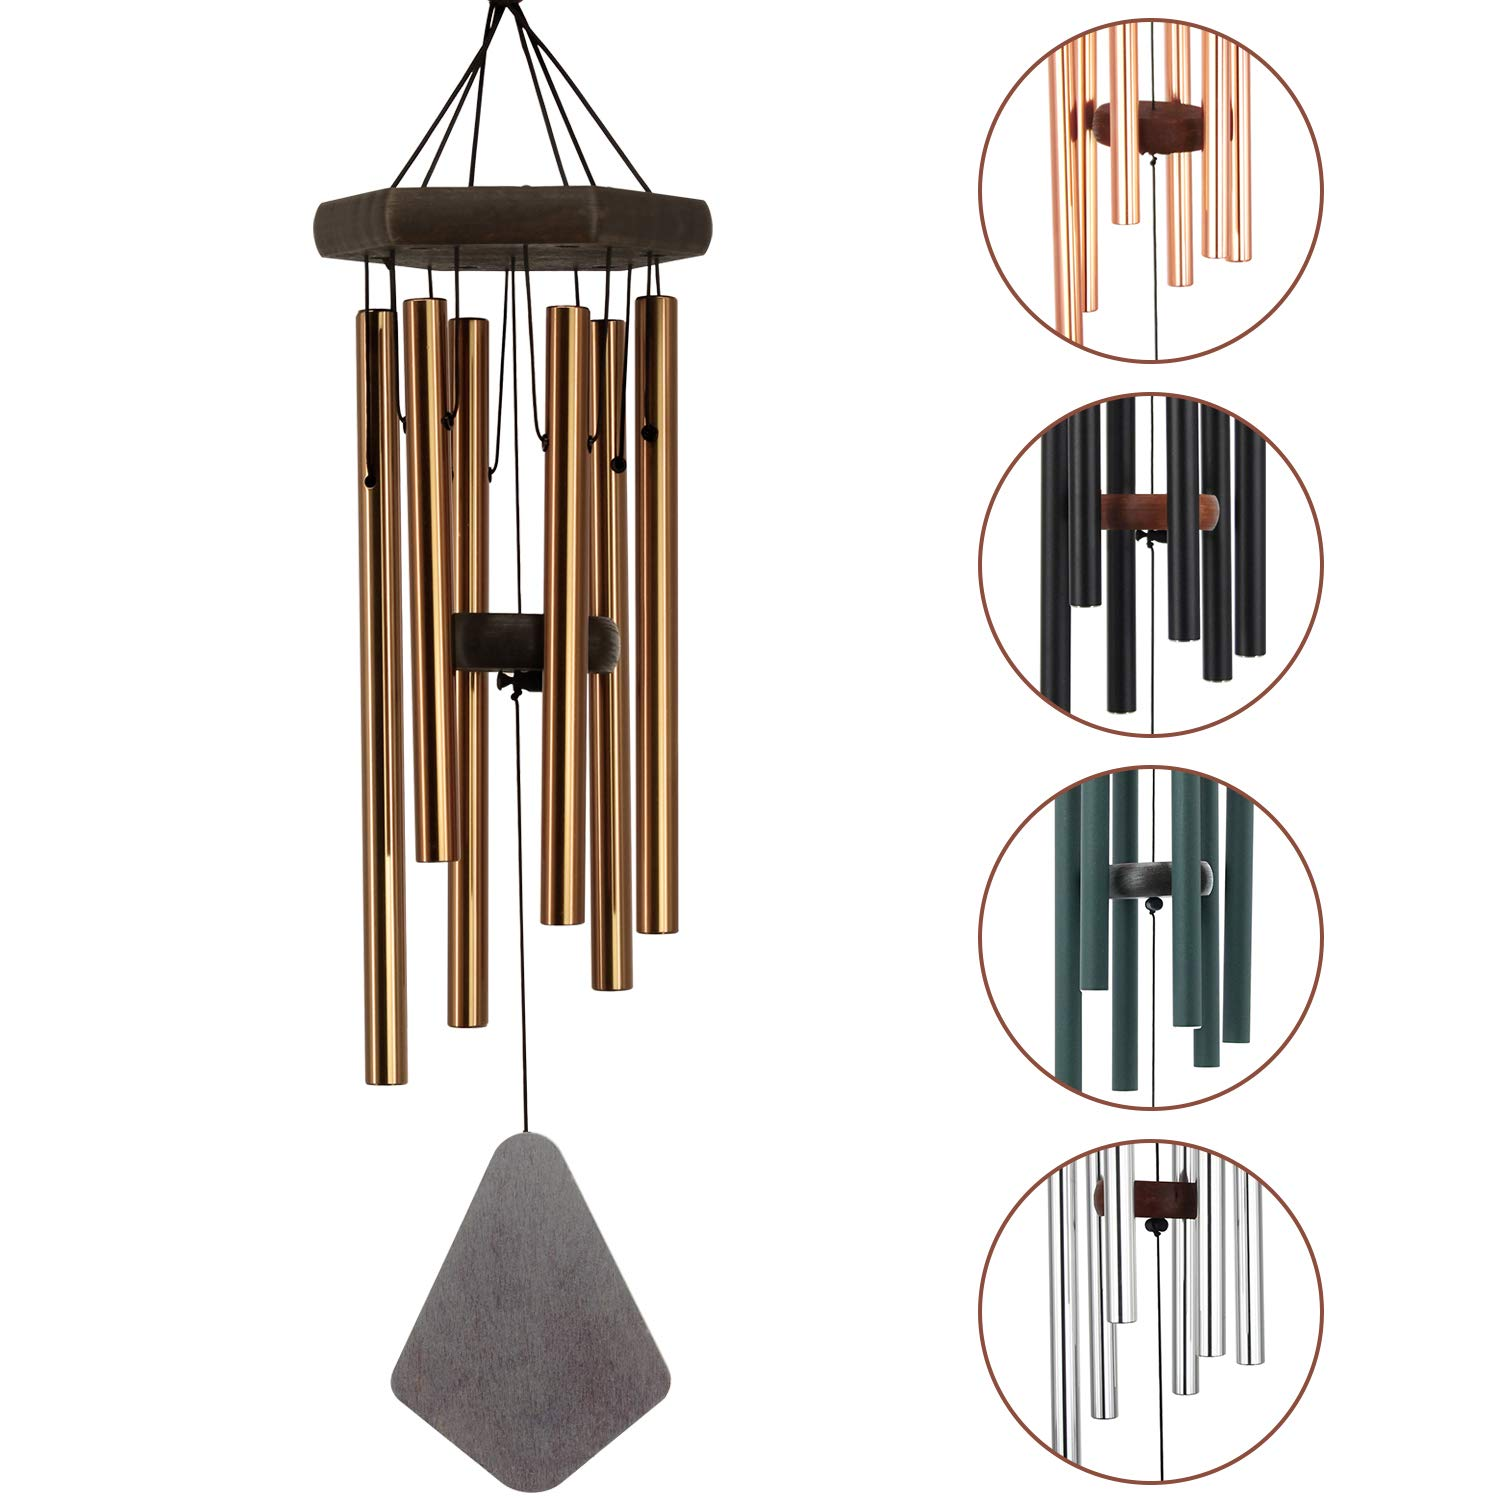 Deep Tone Wind Chimes Outdoor|28 Inches Amazing Grace Bronze Wind Chimes with 6 Aluminum Tubes |Memorial Wind Chimes with Musical Melody for Father, Housewarming Gift, Garden, Yard, Home DÉCor.